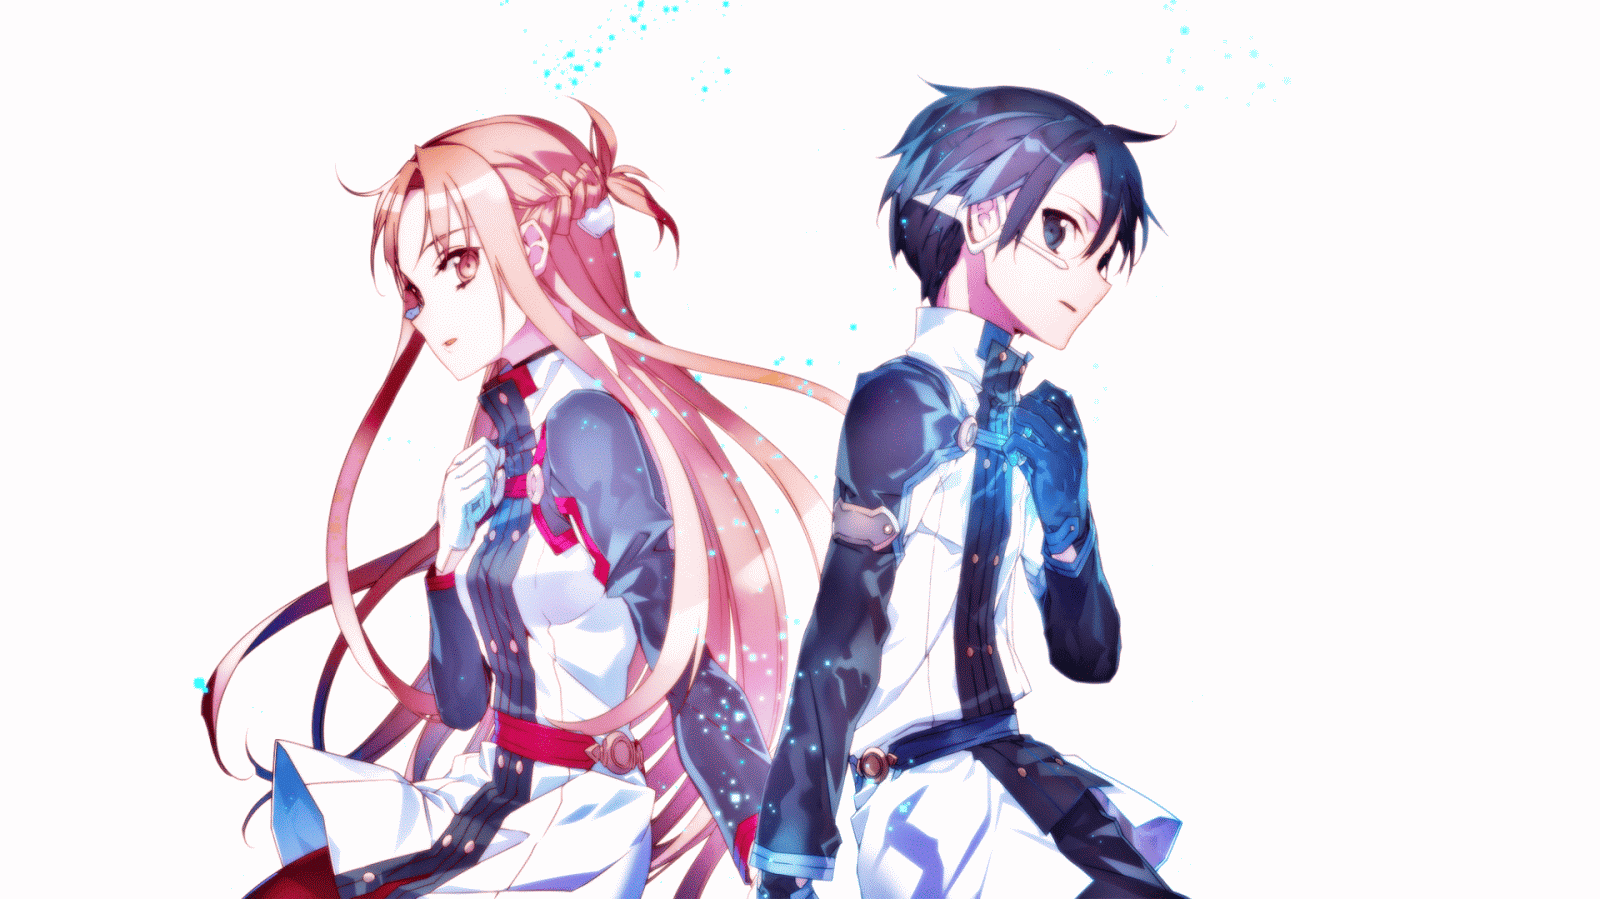 AowVN%2B%252822%2529 min - [ Hình Nền ] Anime Sword Art Online The Movie : Ordinal Scale Cực Đẹp | Wallpaper